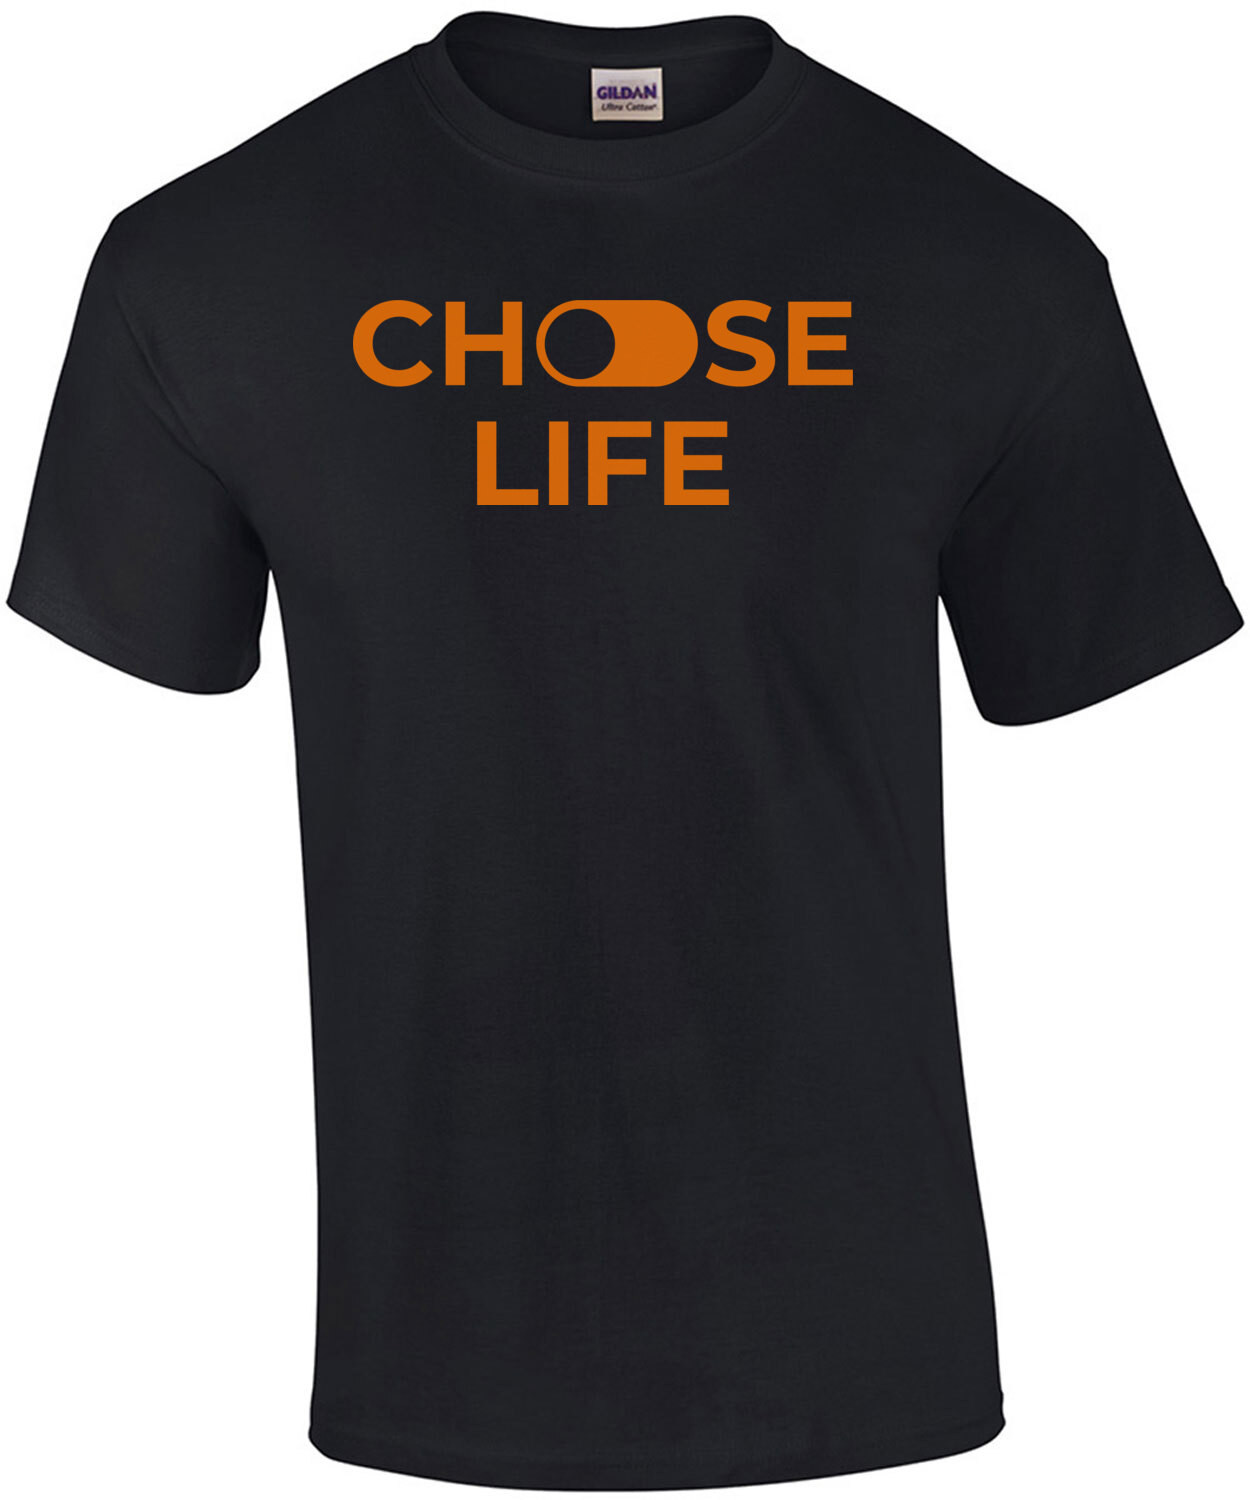 Choose Life - Trainspotting - 90's T-Shirt